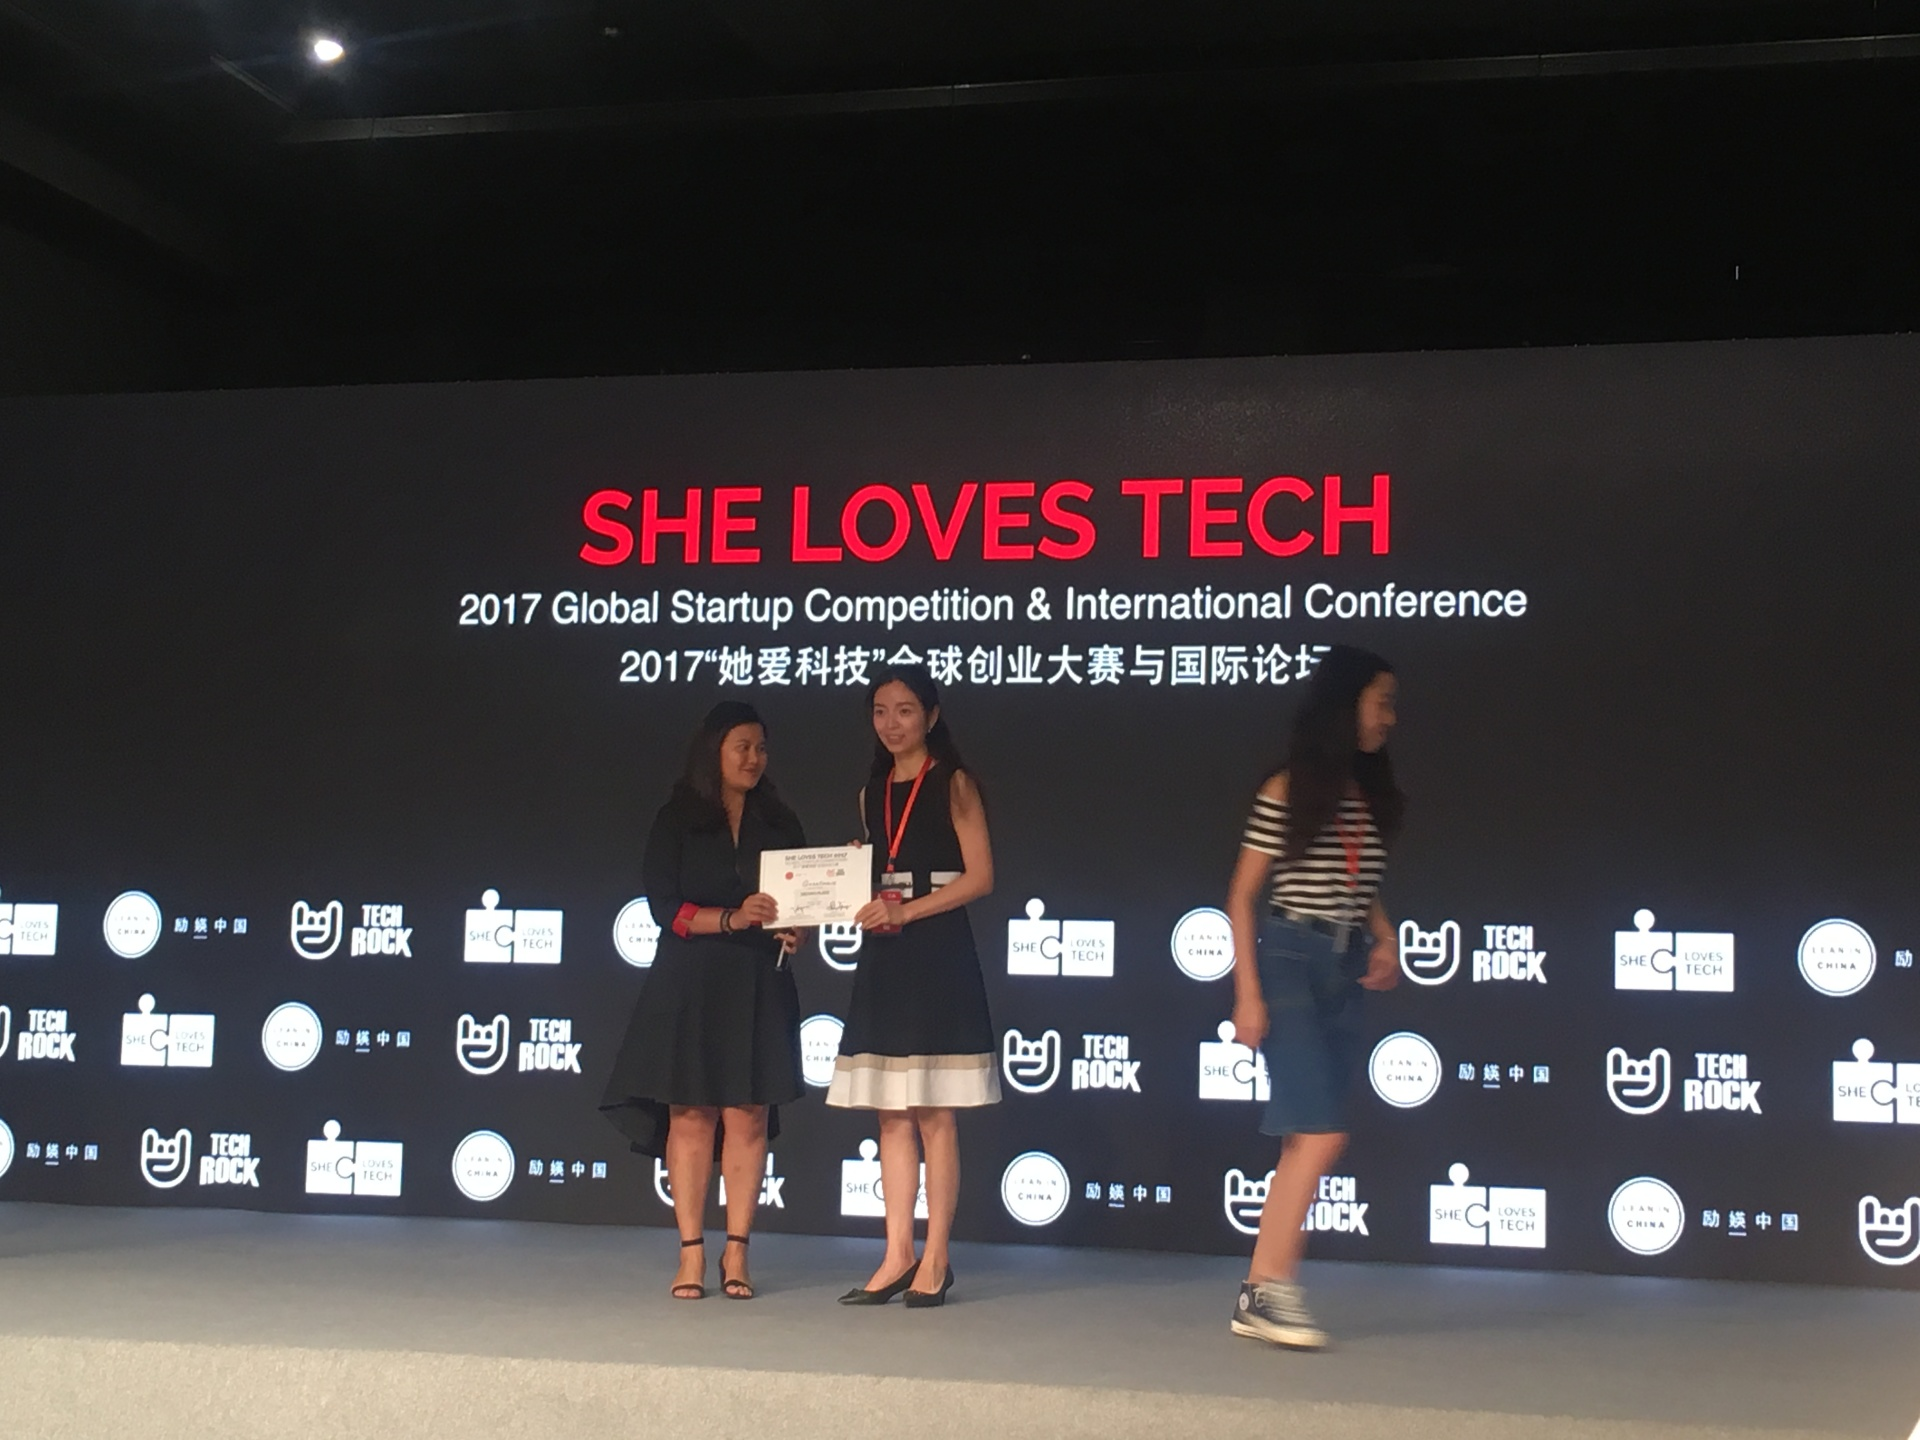 QuantWave won the 2nd Place at Shelovestech Final Competition in Beijing